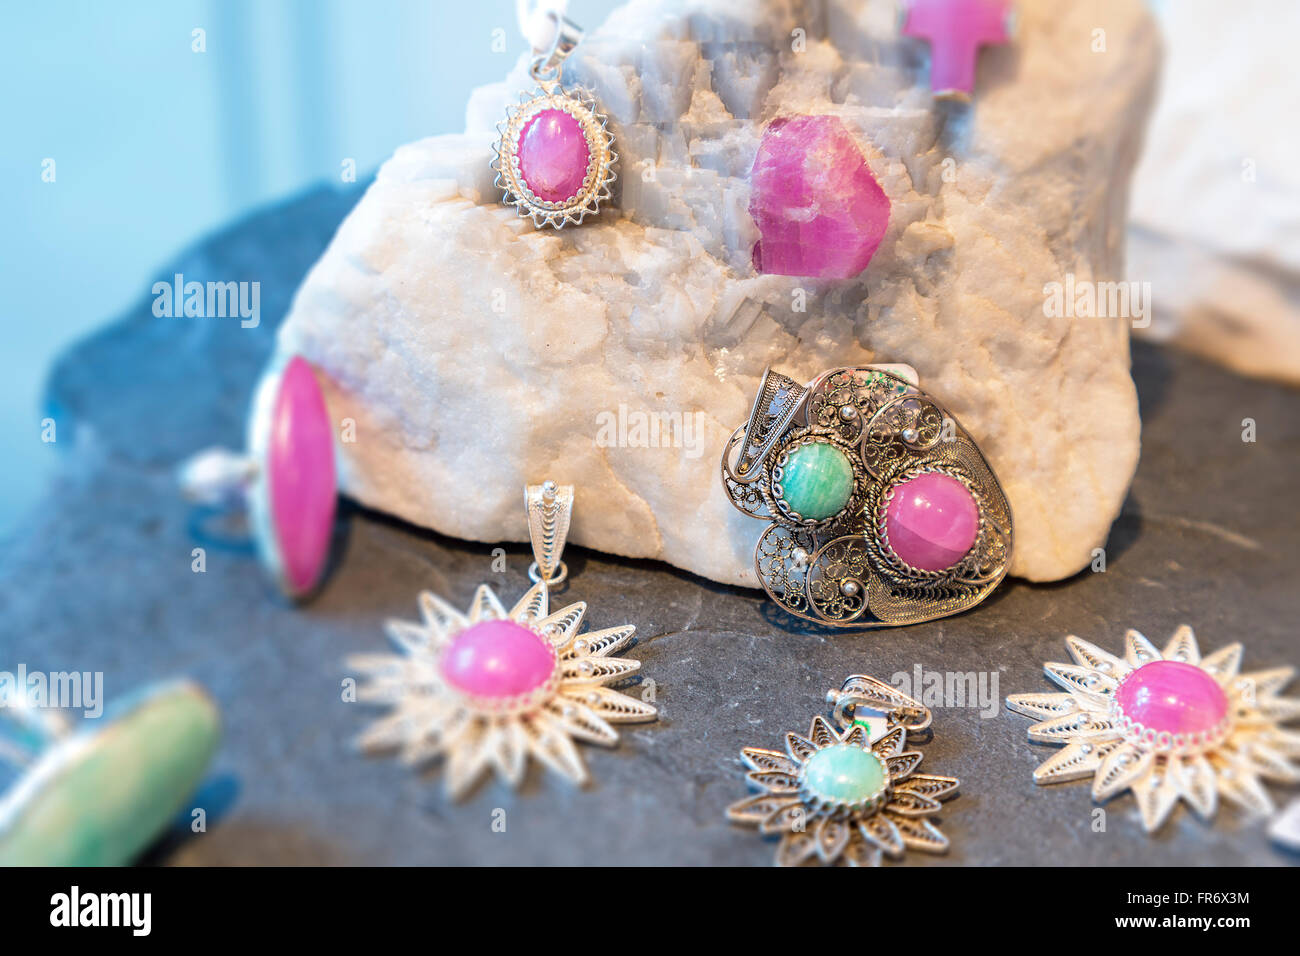 republic of Macedonia, Skopje, Pink ruby from Macedonia - Stock Image